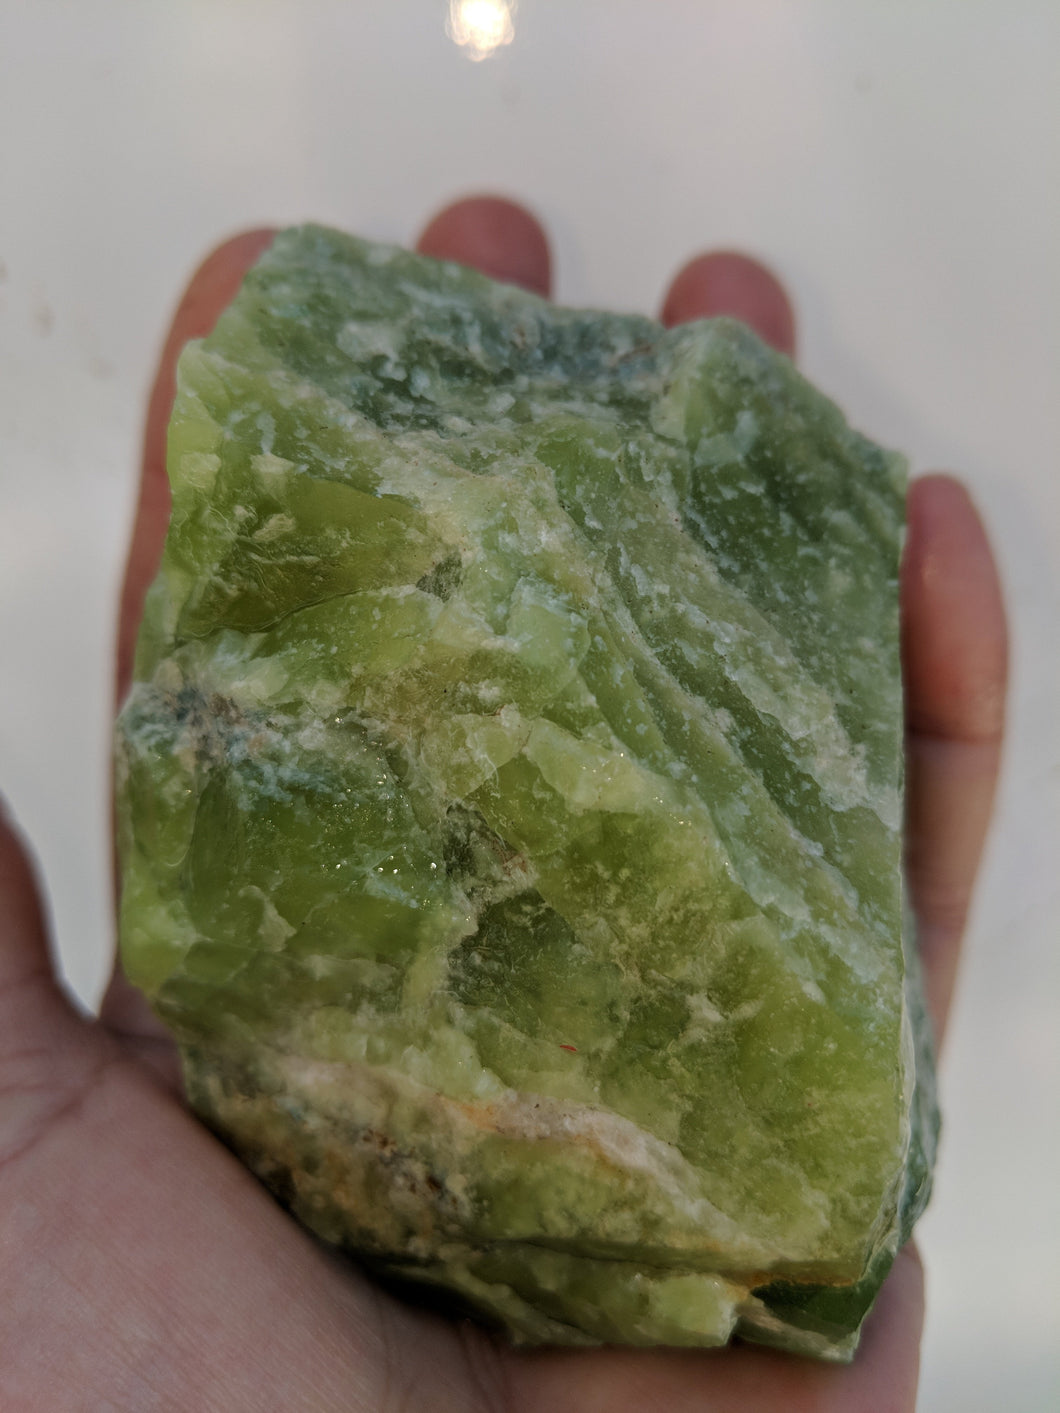 Pulga California Jade RARE Vesuvianite Raw Specimen Chunk Butte Camp Fire Eco Restoration